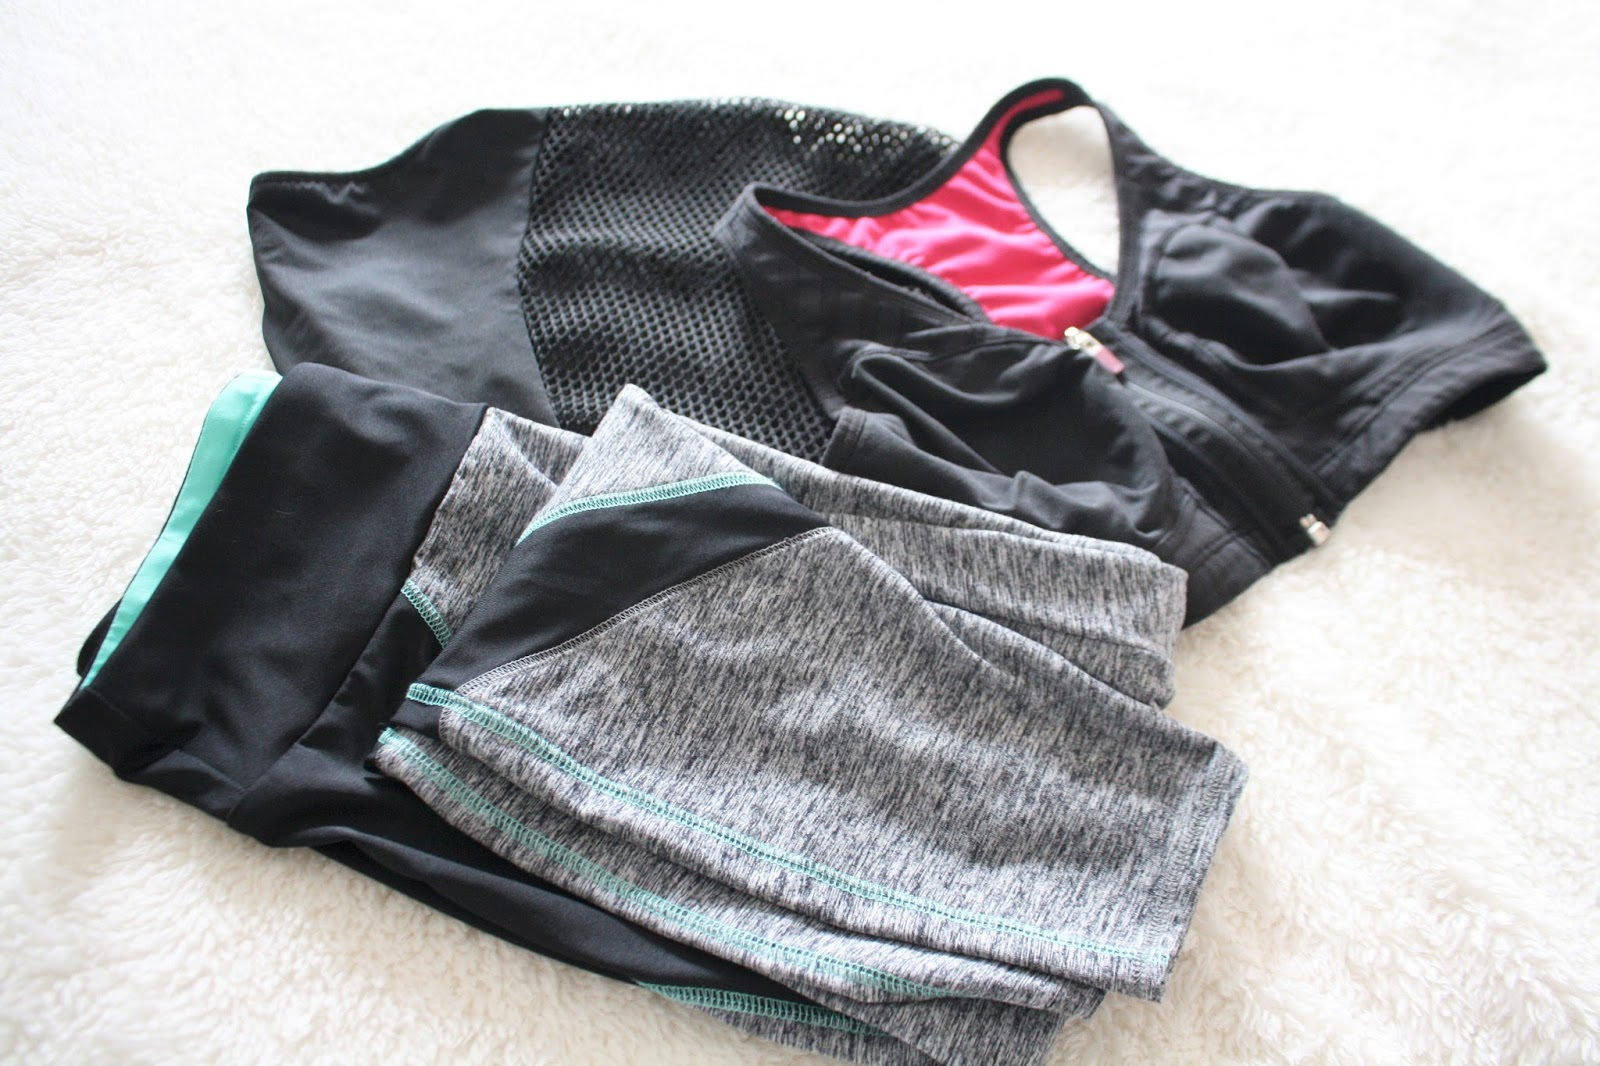 my gym essentials, nike gym bag, nike flex run 2015 running shoes, mens gym clothes, womens sportswear, anika may essentials, work out and workout clothes essentials